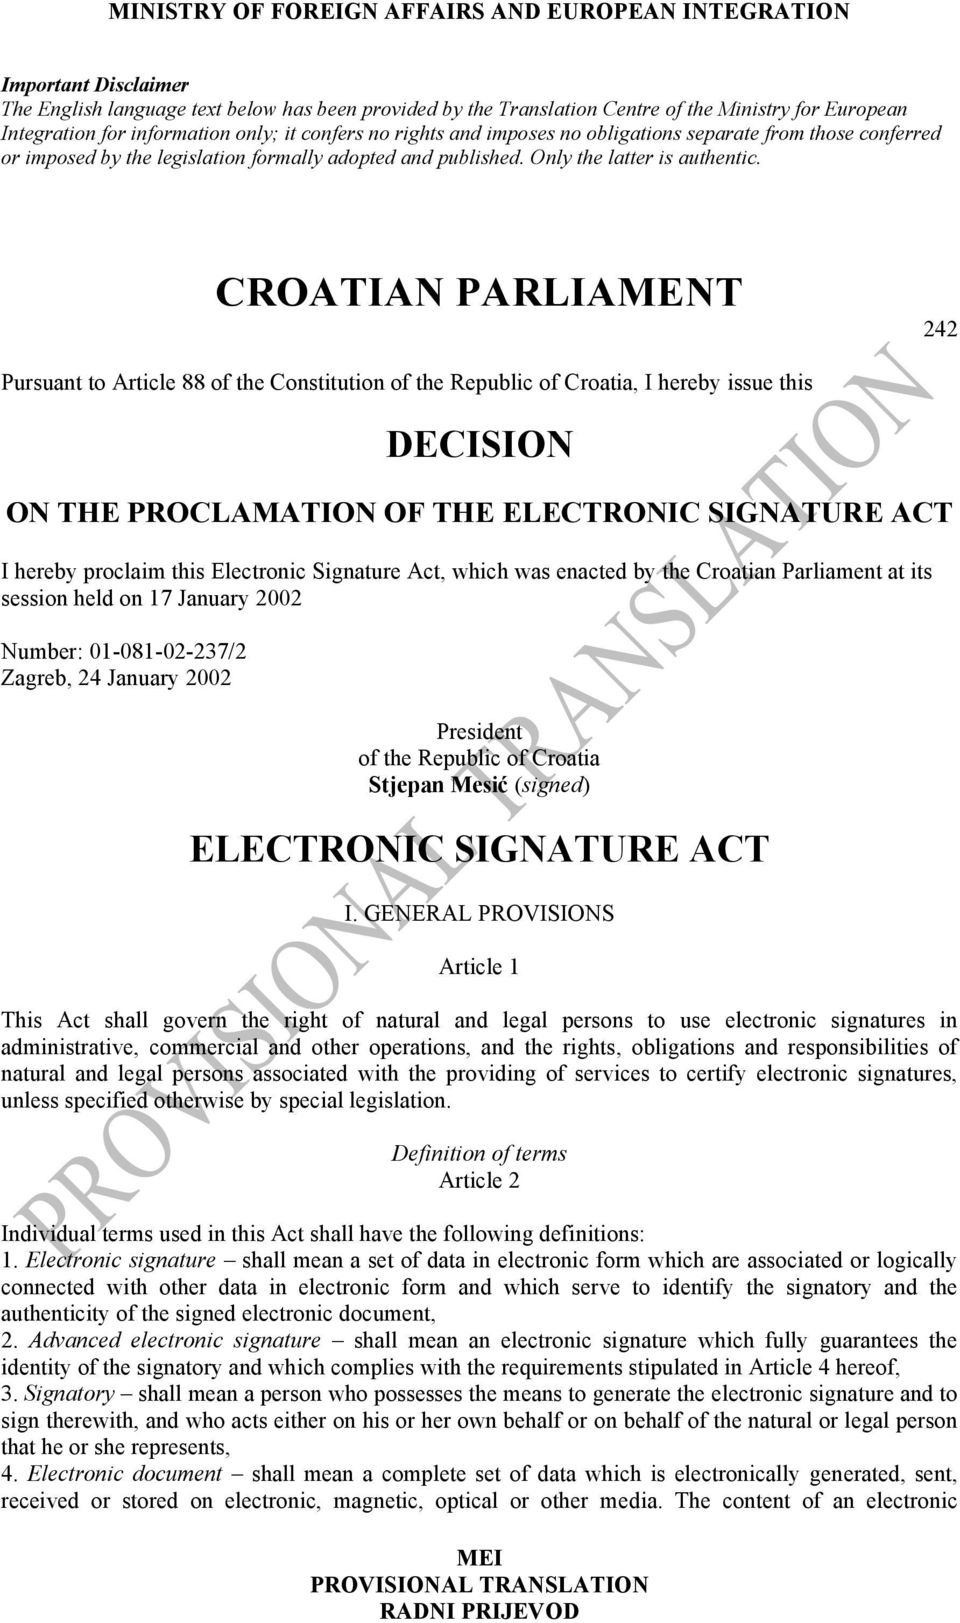 CROATIAN PARLIAMENT 242 Pursuant to Article 88 of the Constitution of the Republic of Croatia, I hereby issue this DECISION ON THE PROCLAMATION OF THE ELECTRONIC SIGNATURE ACT I hereby proclaim this